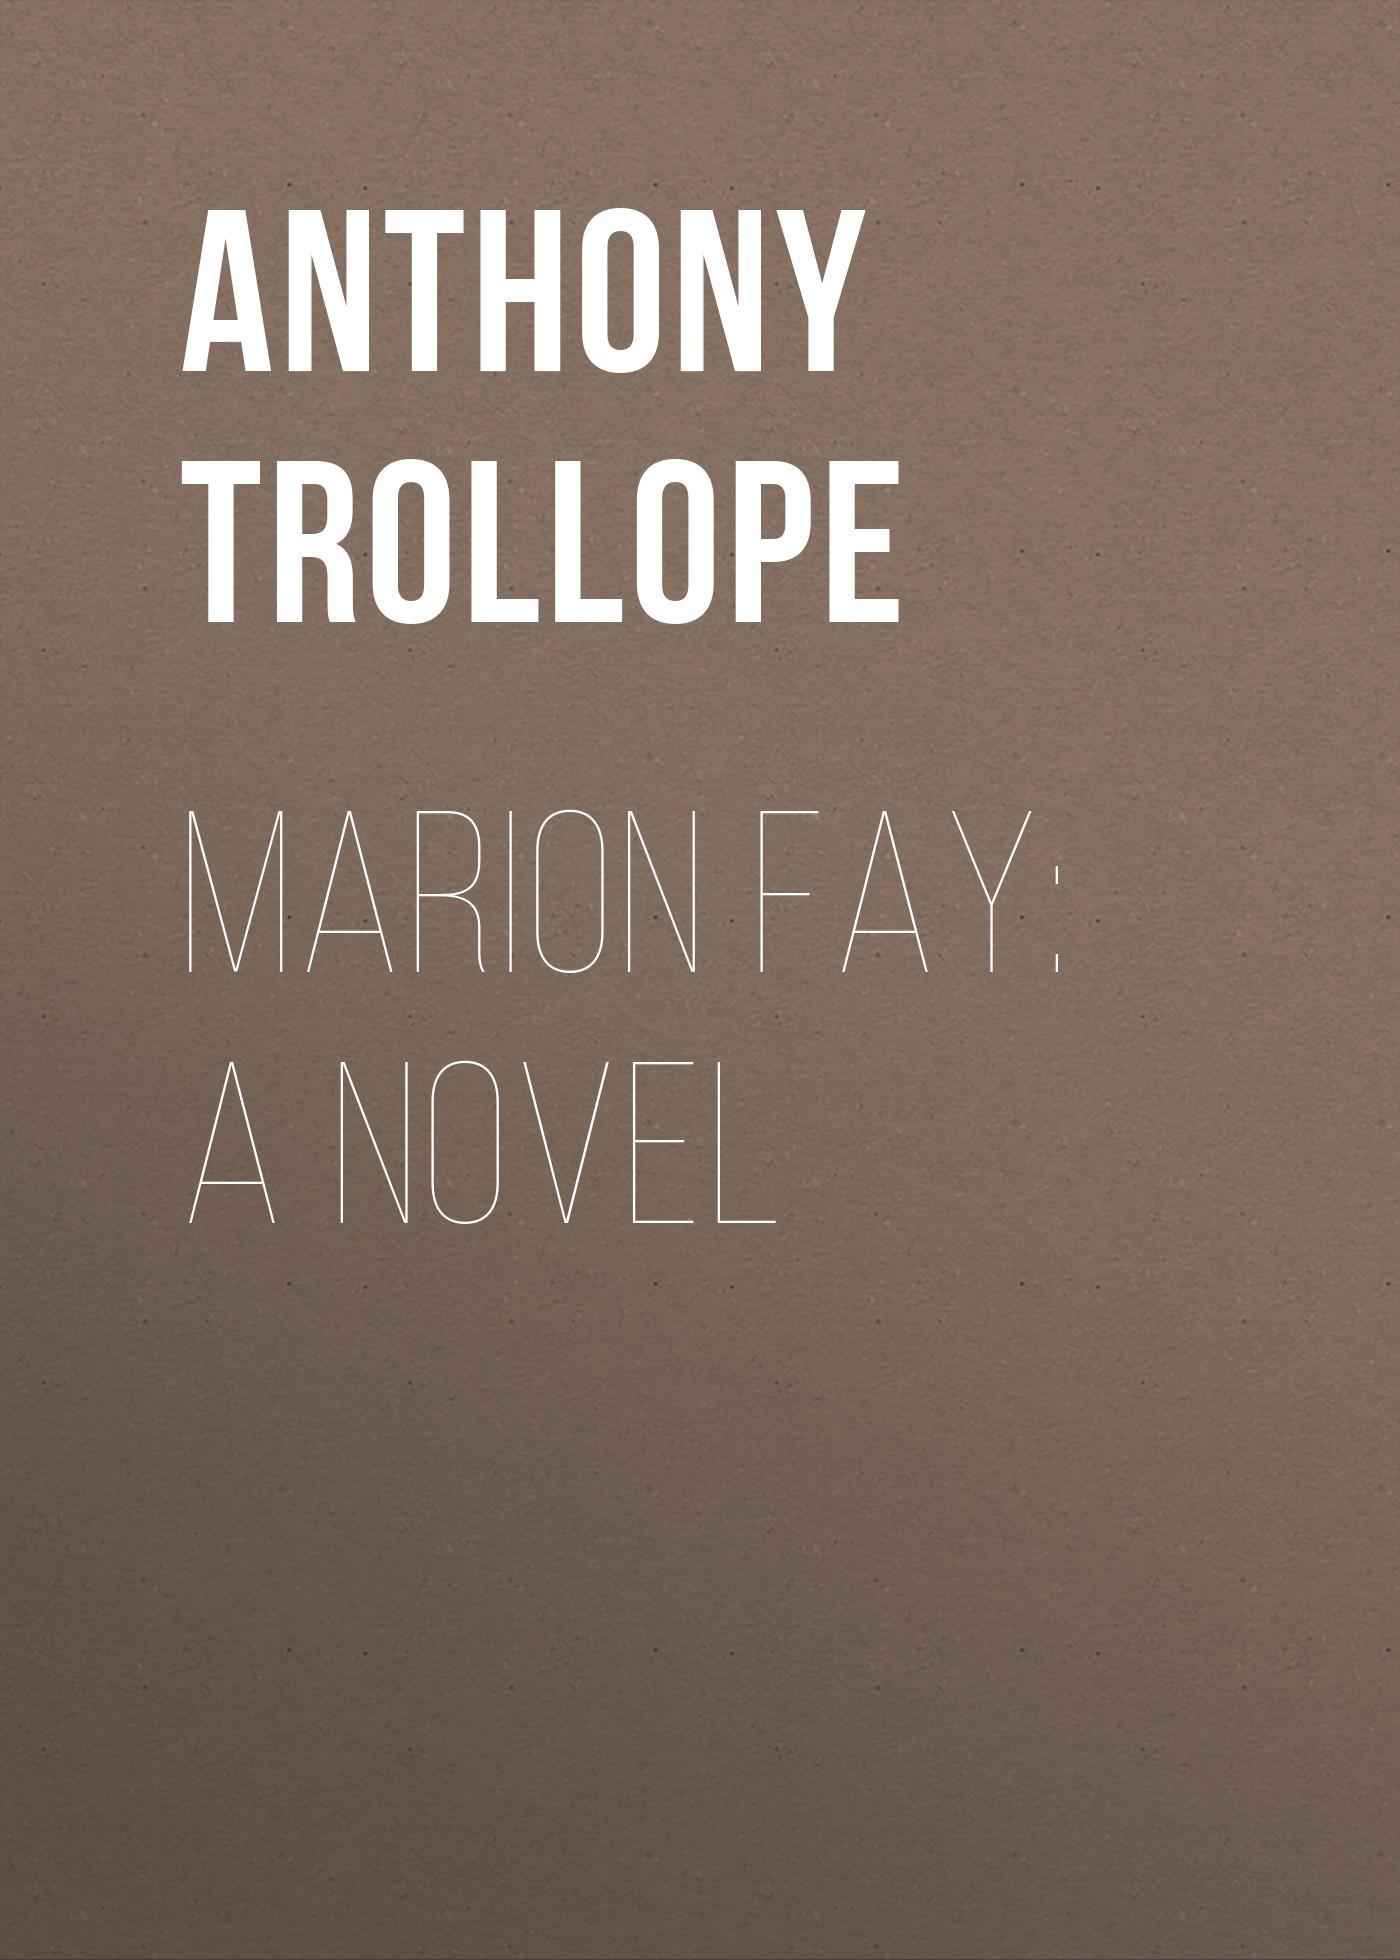 Trollope Anthony Marion Fay: A Novel цены онлайн